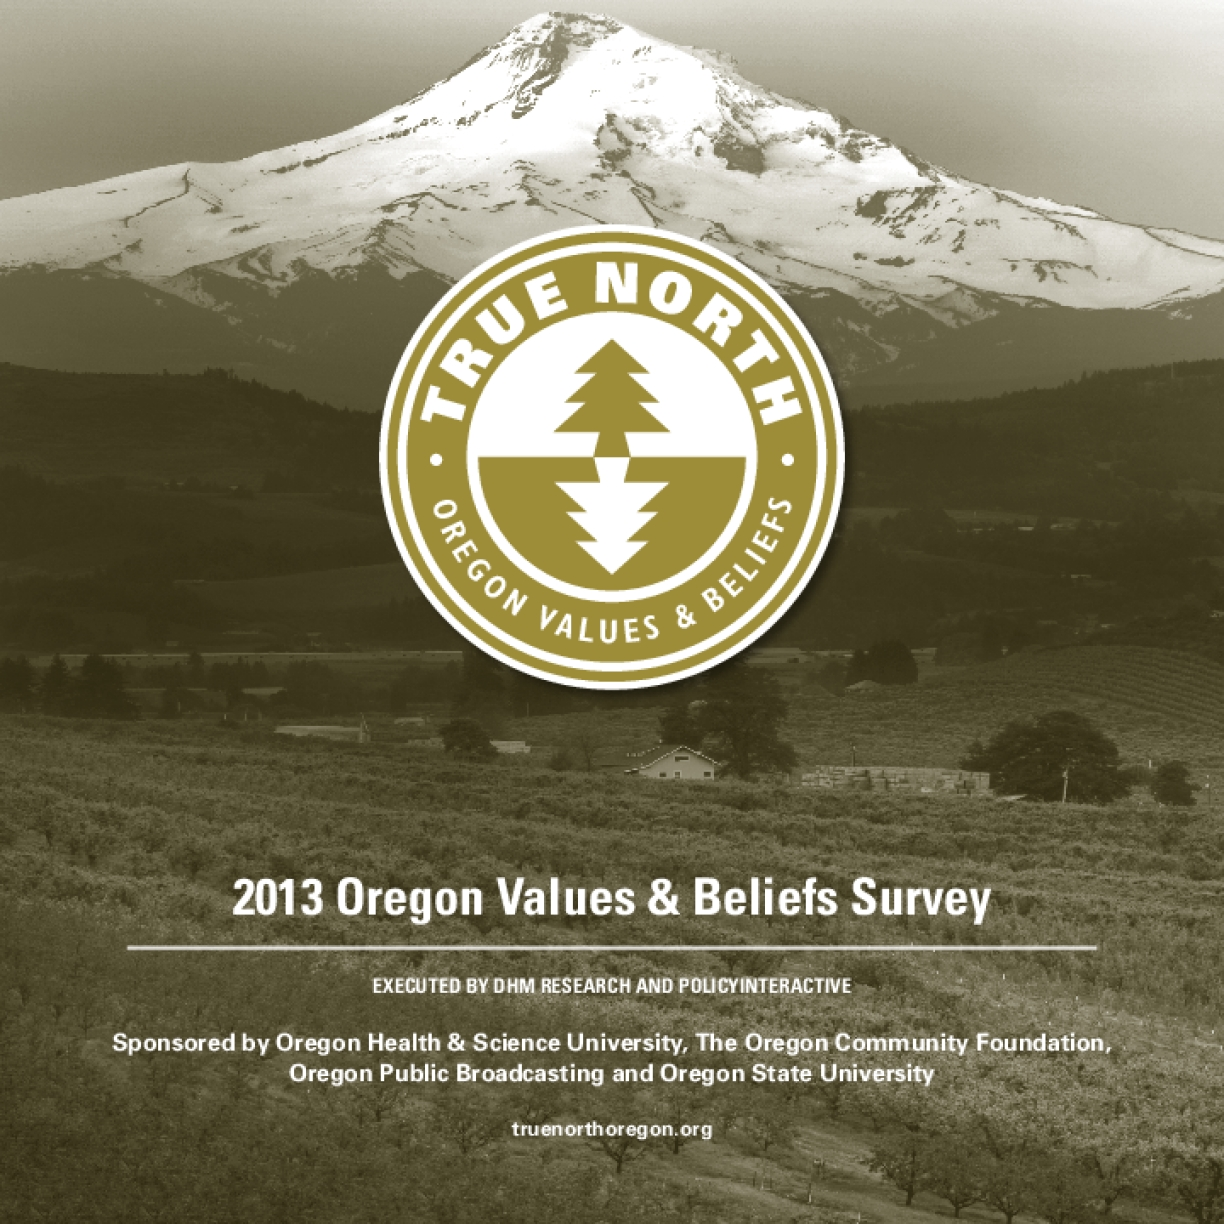 2013 Oregon Values & Beliefs Survey